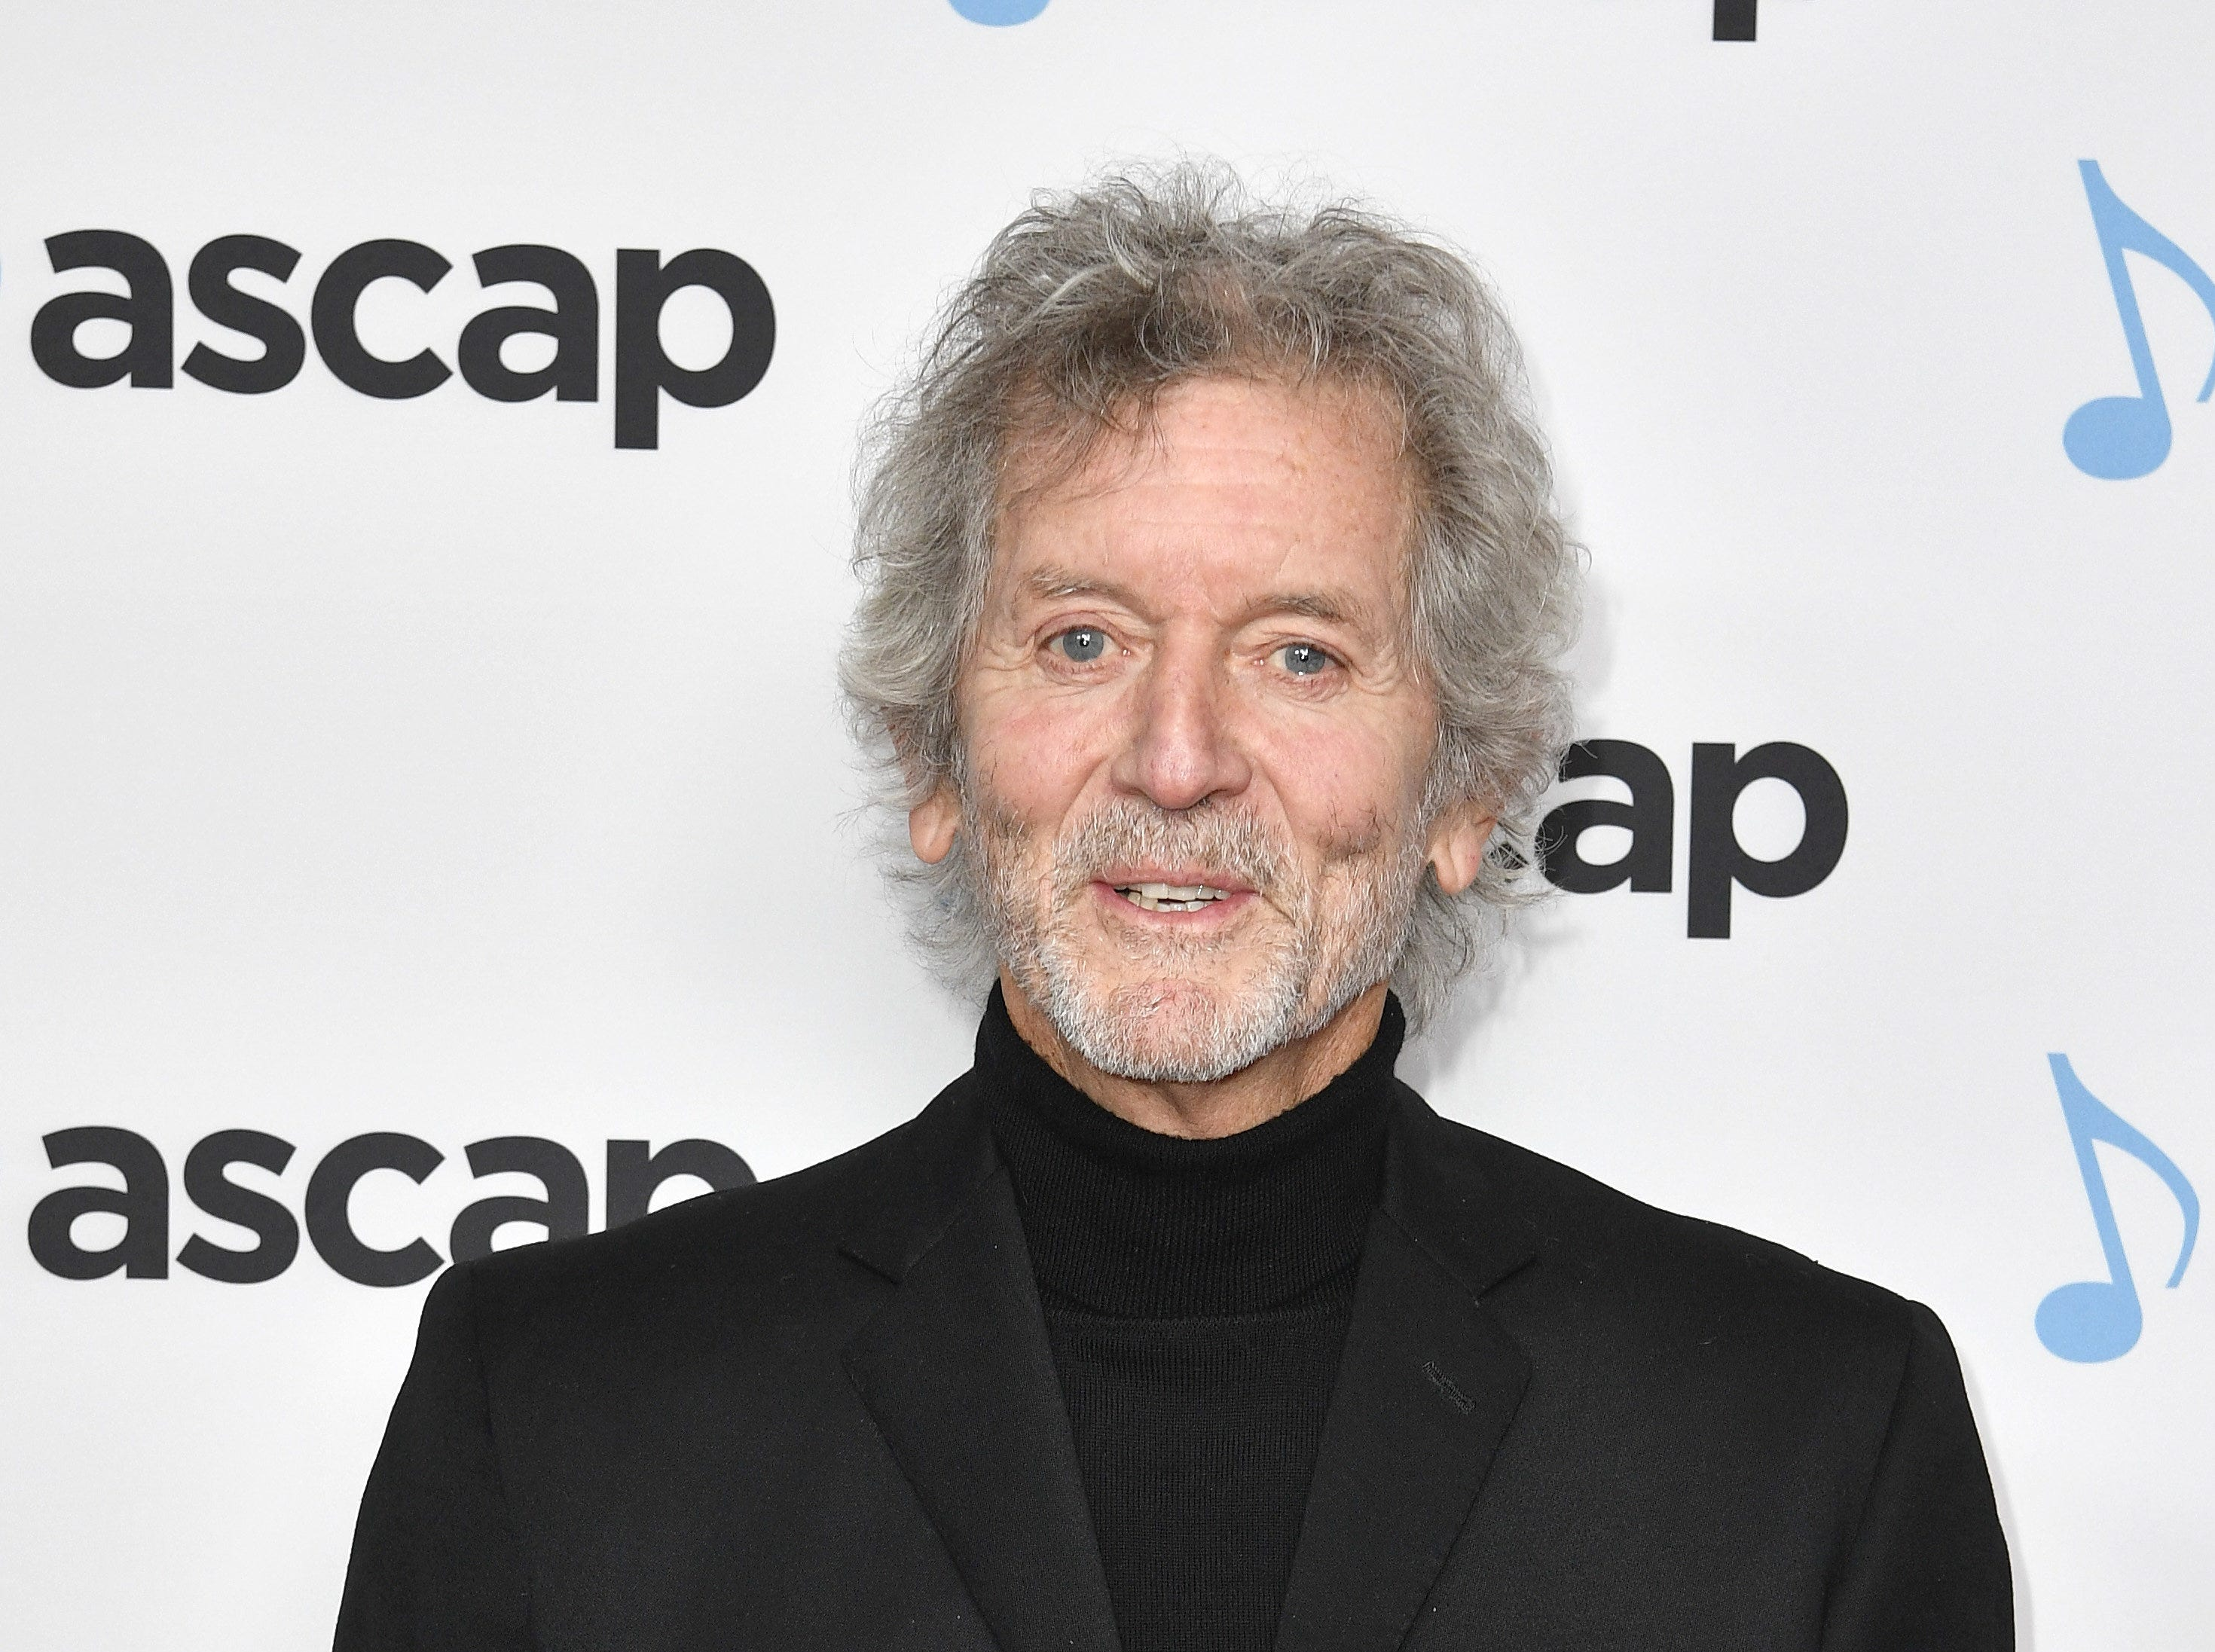 Rodney Crowell on the red carpet at the 55th annual ASCAP Country Music Awards  on Monday, Nov. 6, 2017, at the Ryman Auditorium in downtown Nashville, Tennessee.